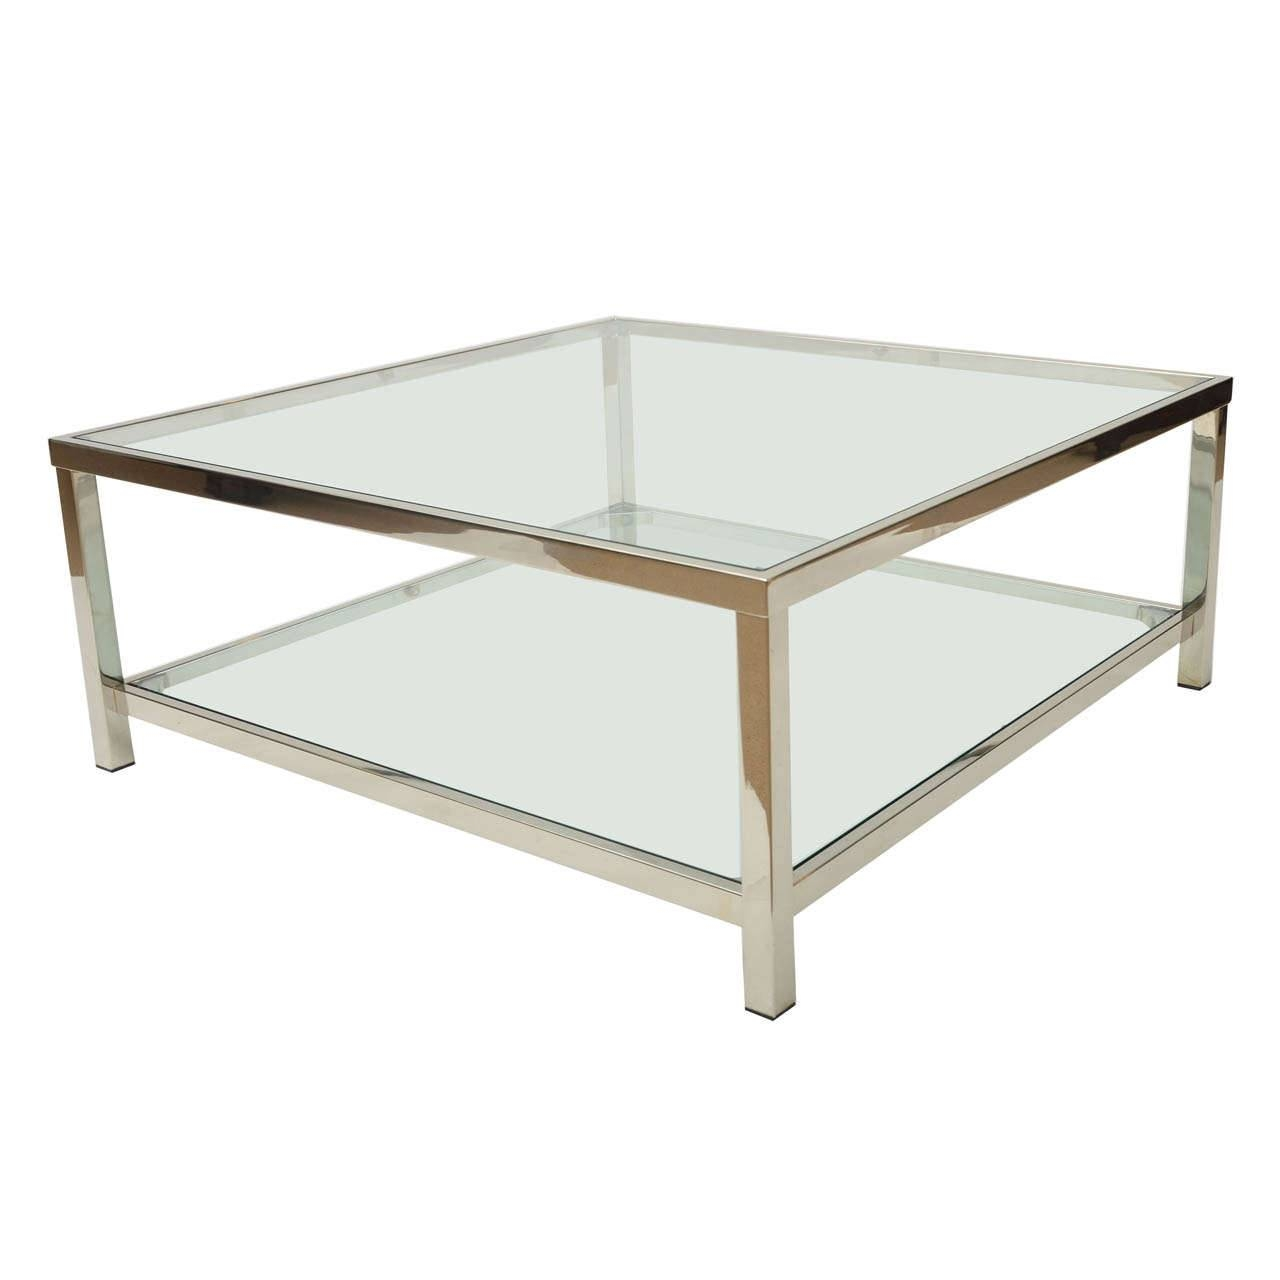 Big Square Coffee Table Tabl / Thippo in Square Glass Coffee Tables (Image 2 of 15)